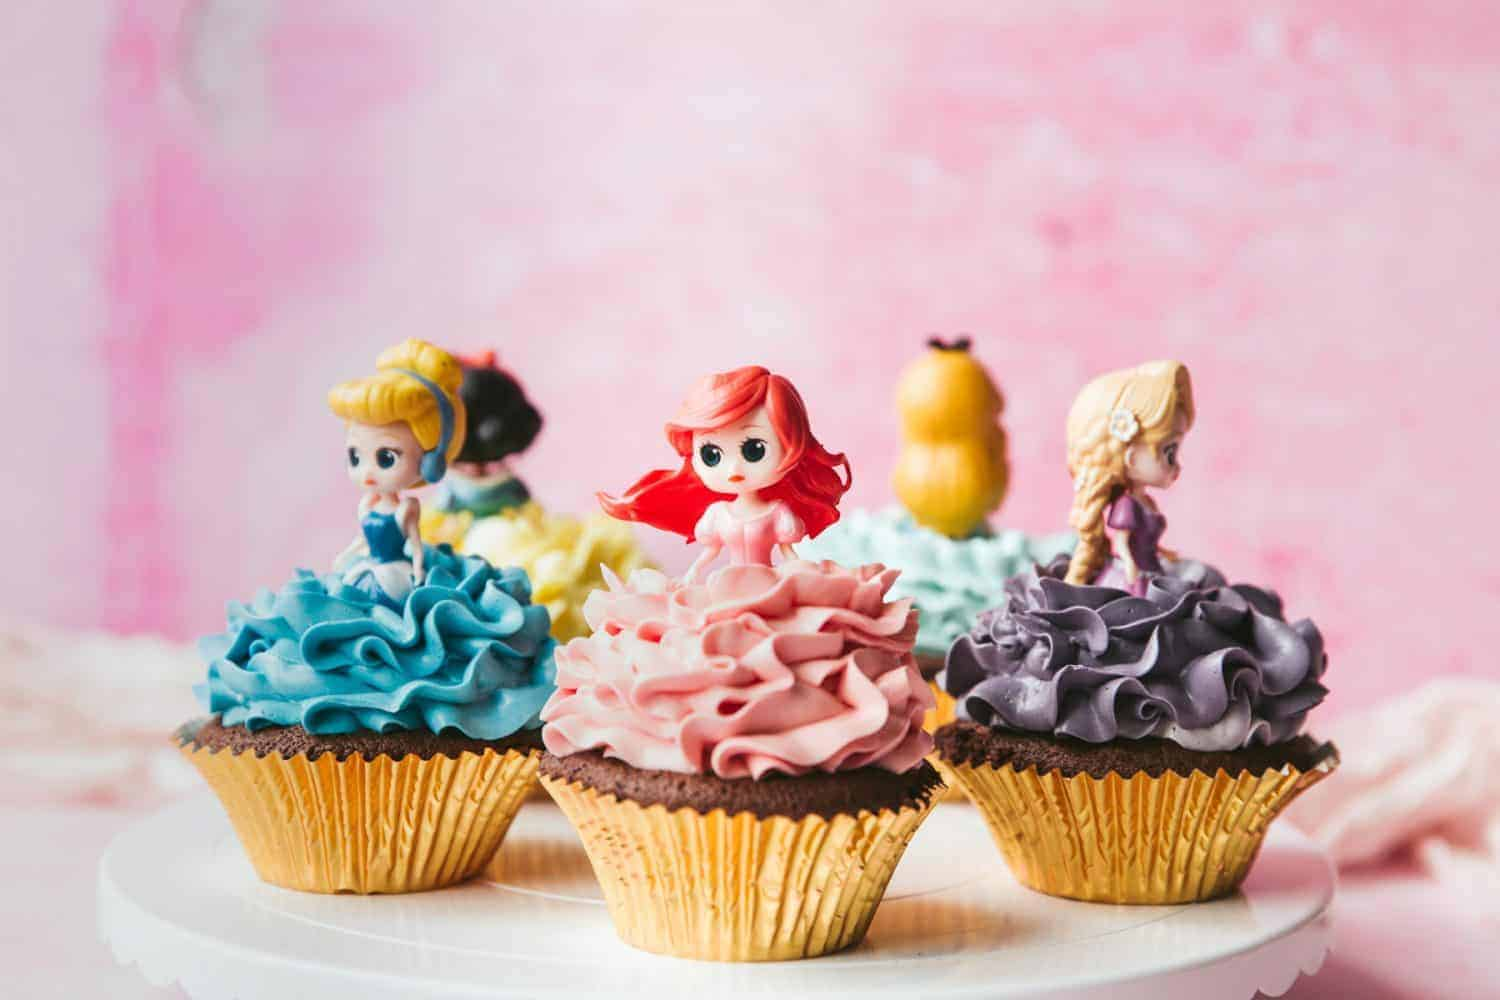 5 Disney Cupcakes with princess cupcake toppers.